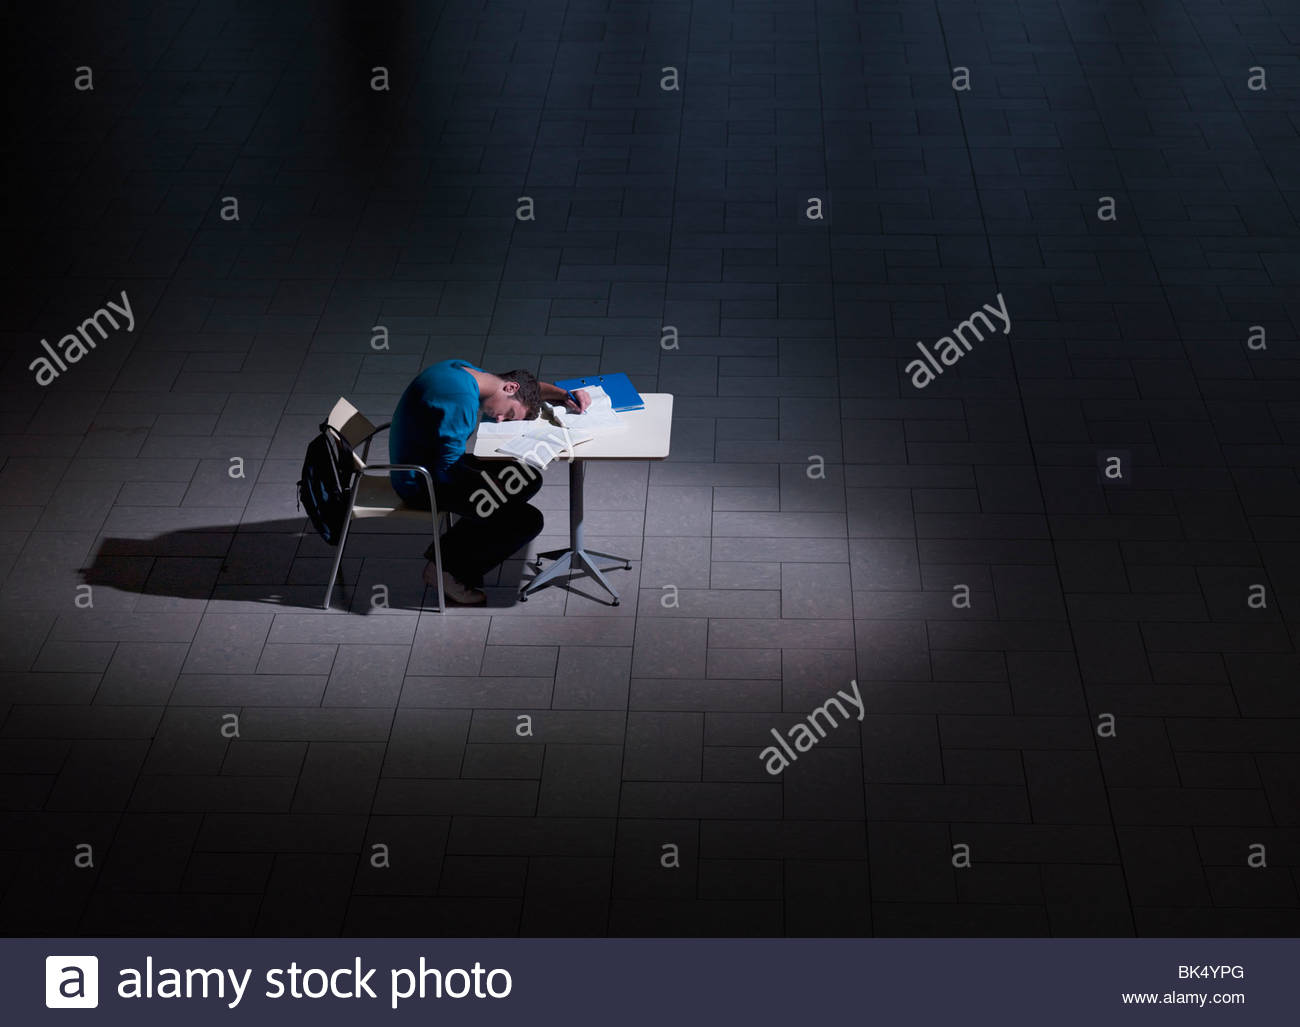 Male student sleeping on desk in darkness - Stock Image